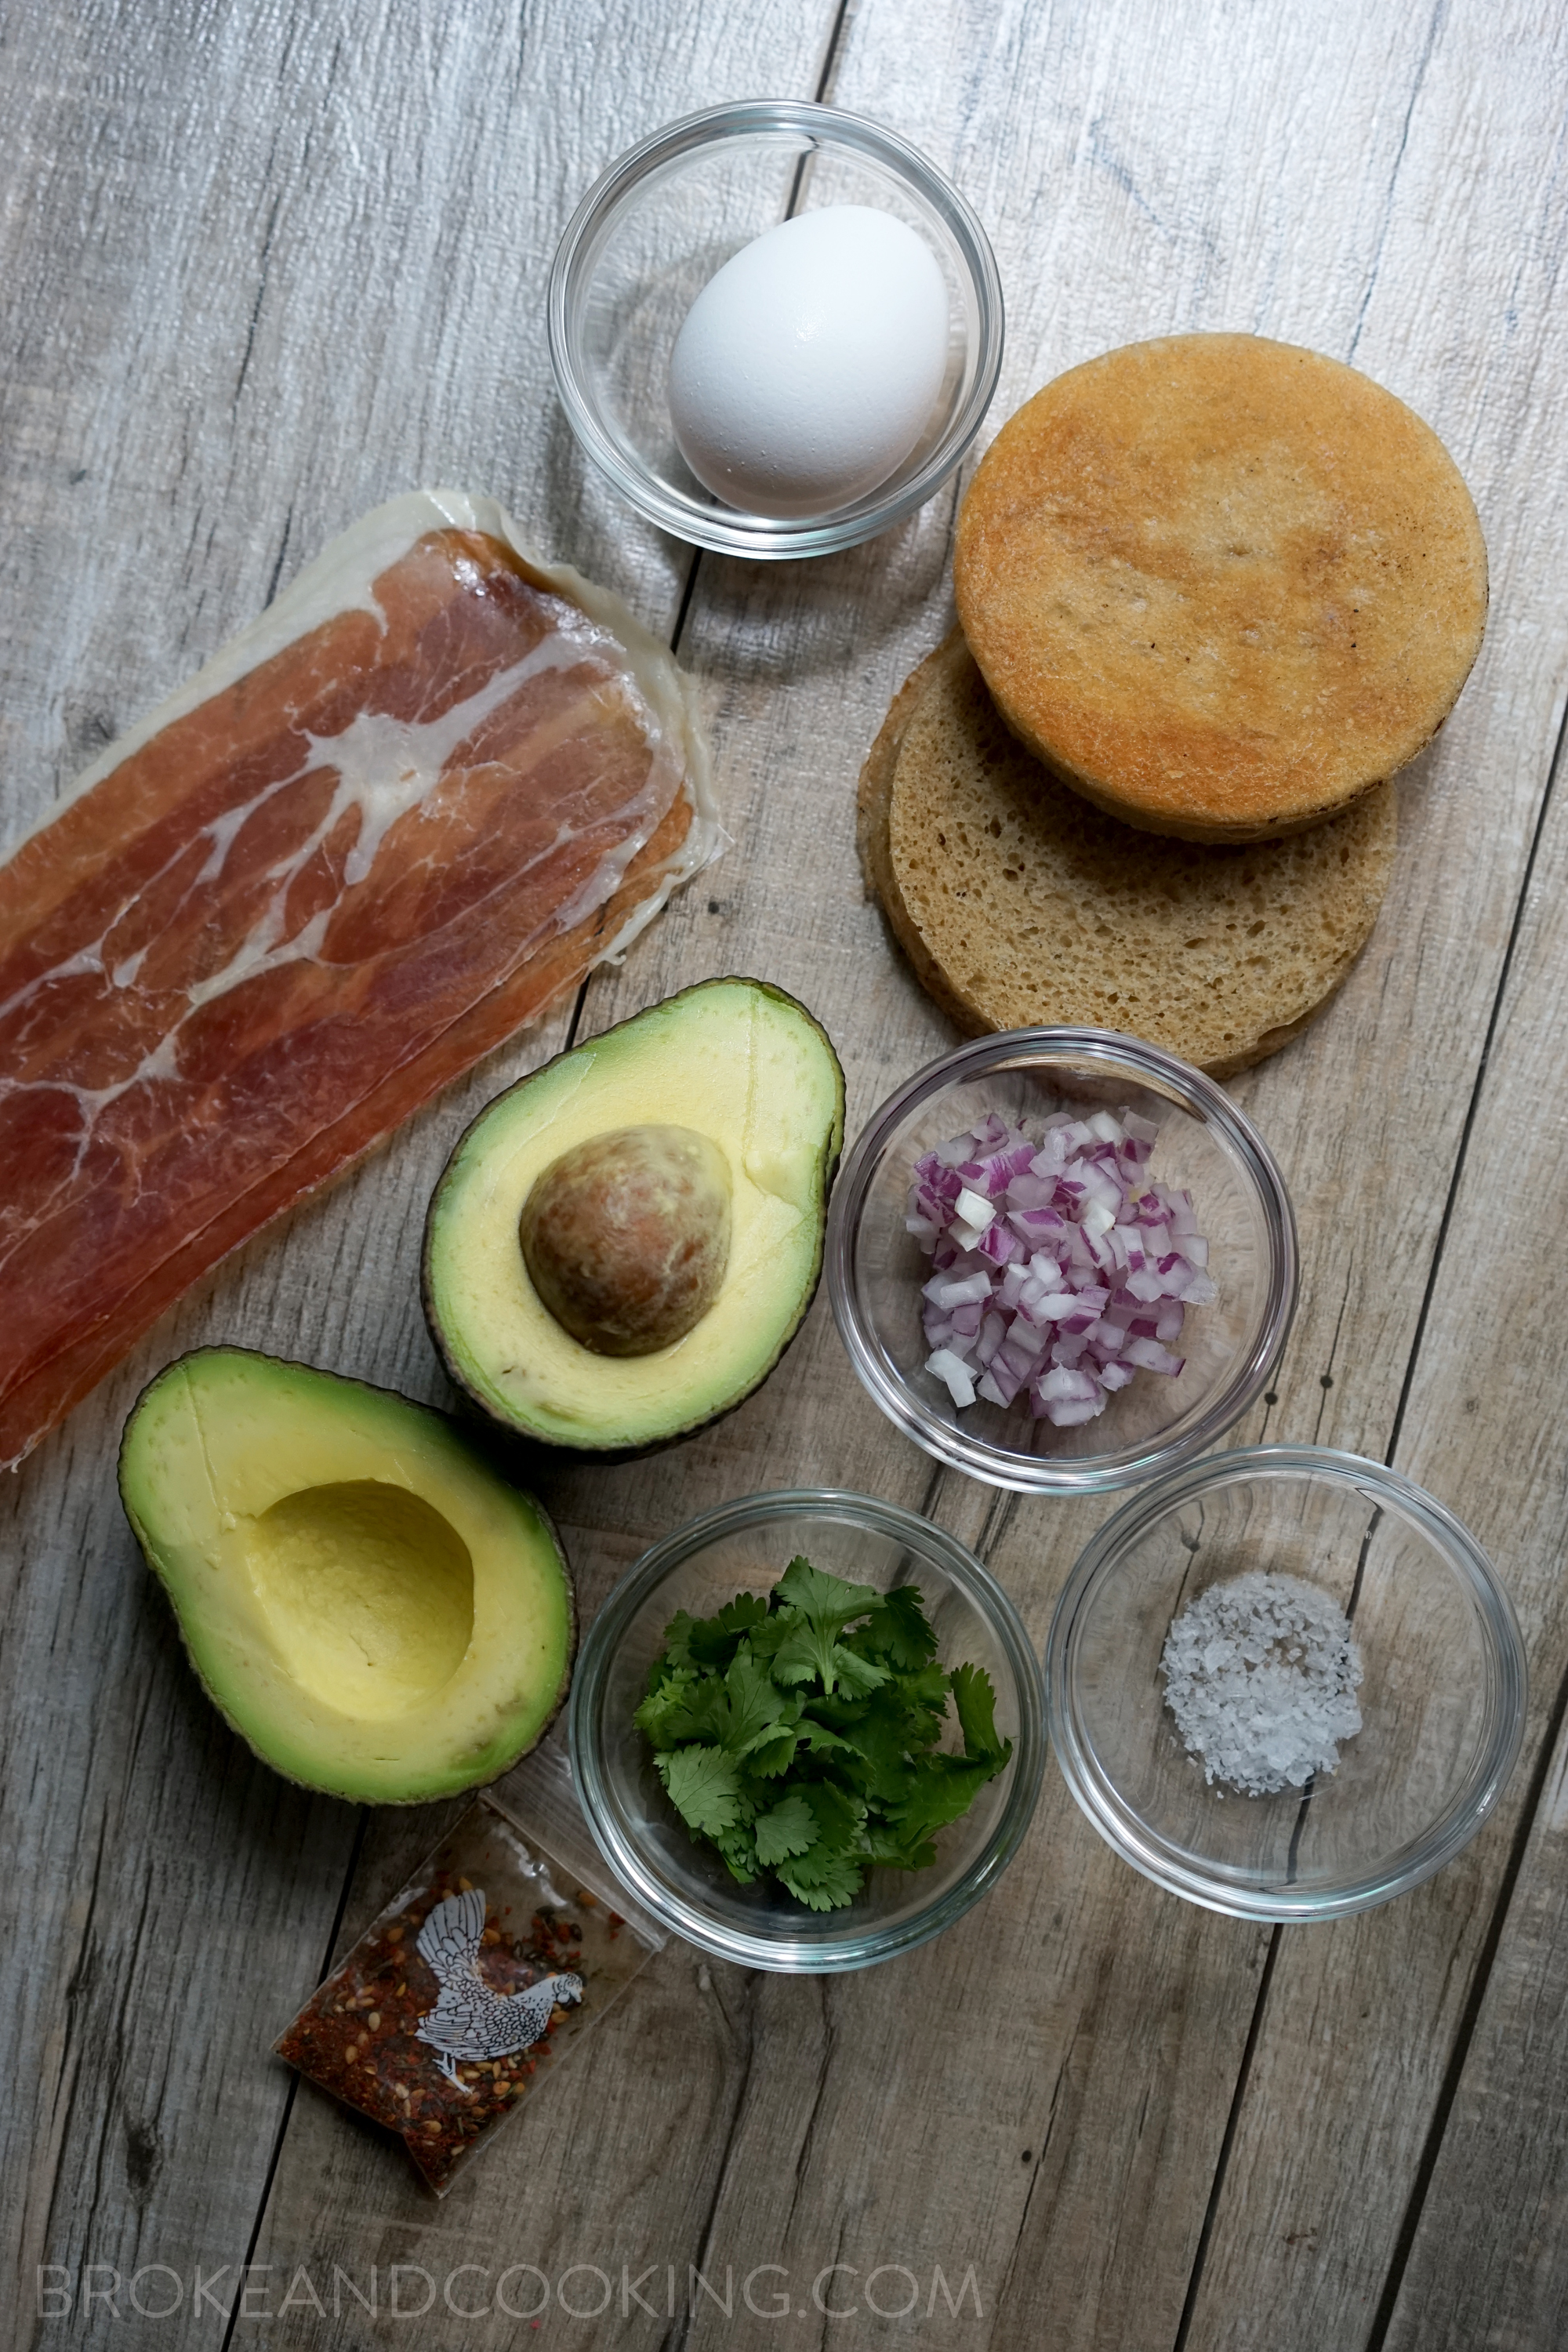 Ingredients for a simple and delicious breakfast sandwich!